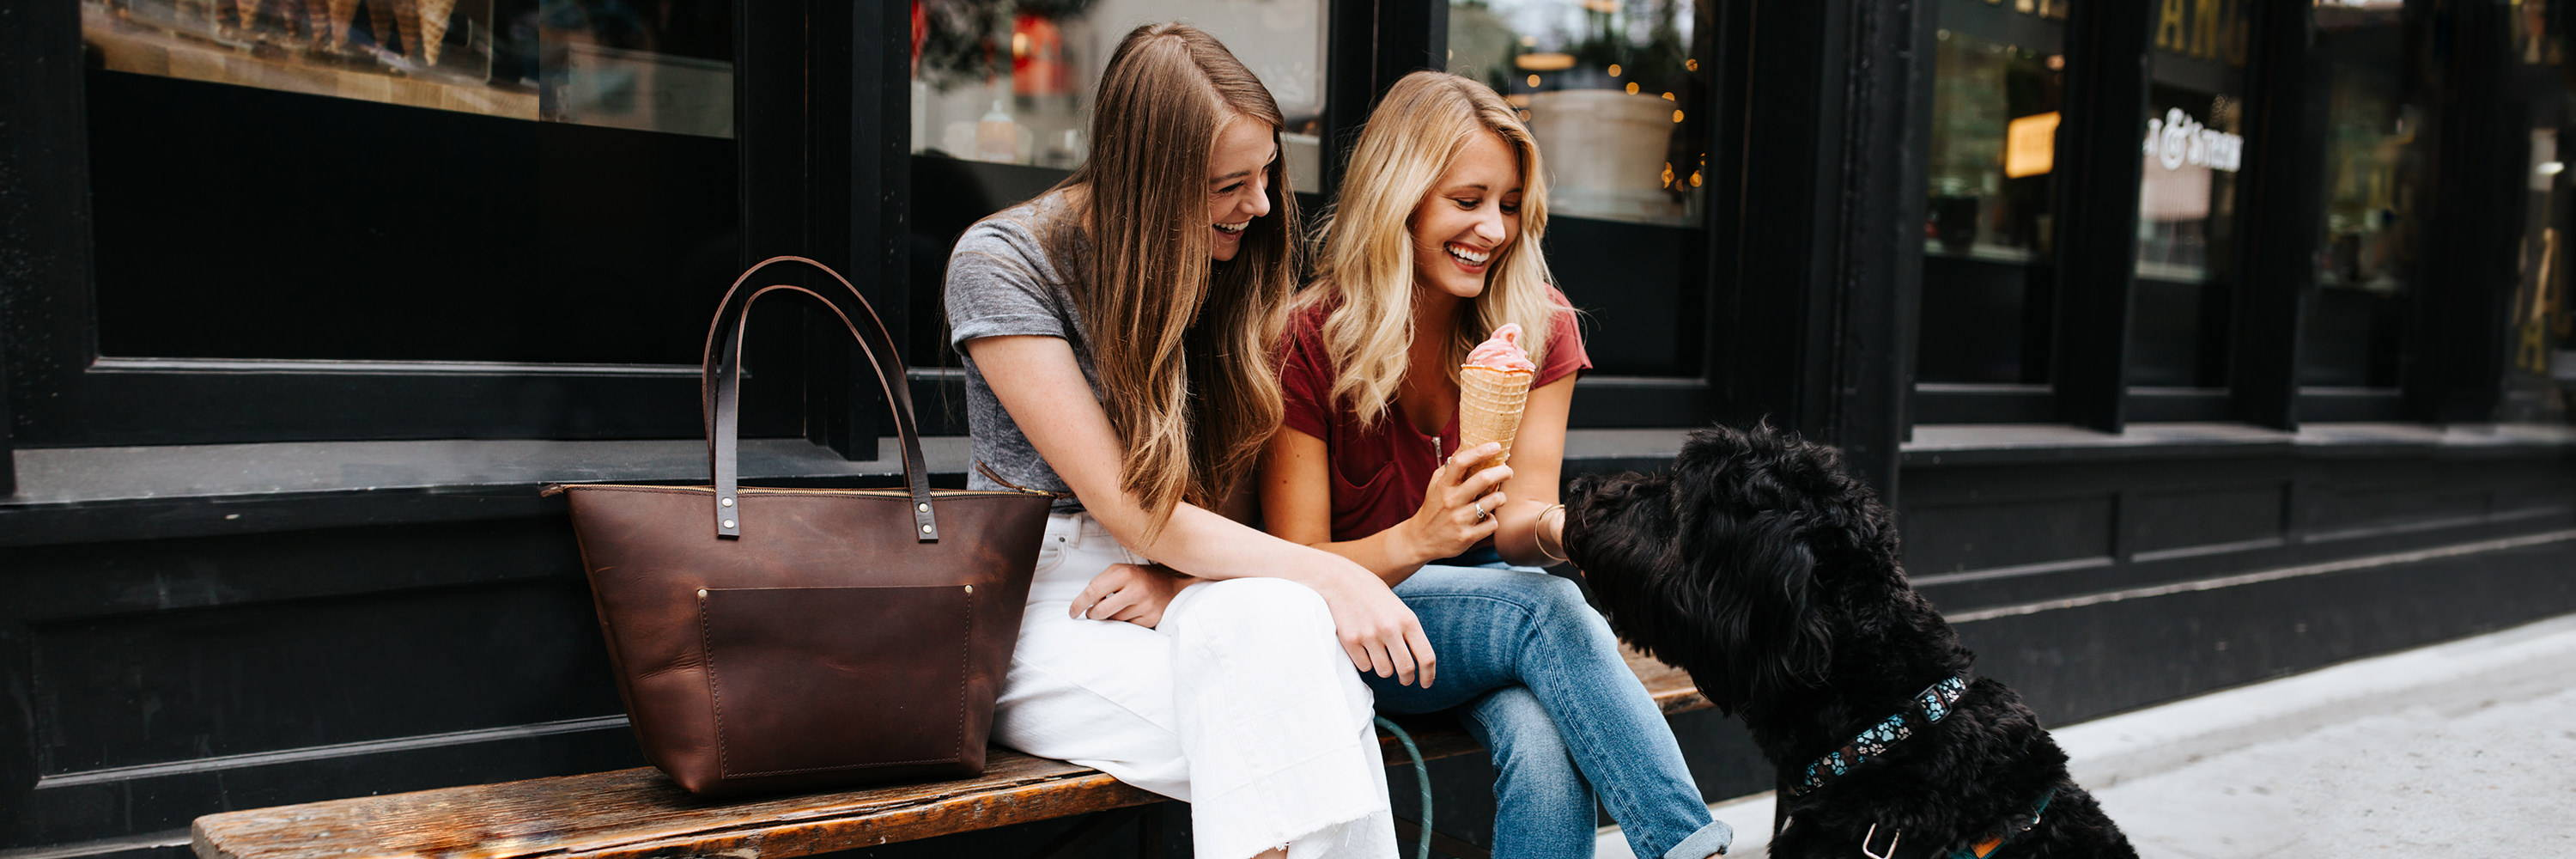 two smiling women eating ice cream cones and playing with a dog next to a handmade grizzly leather zipper tote bag by portland leather goods